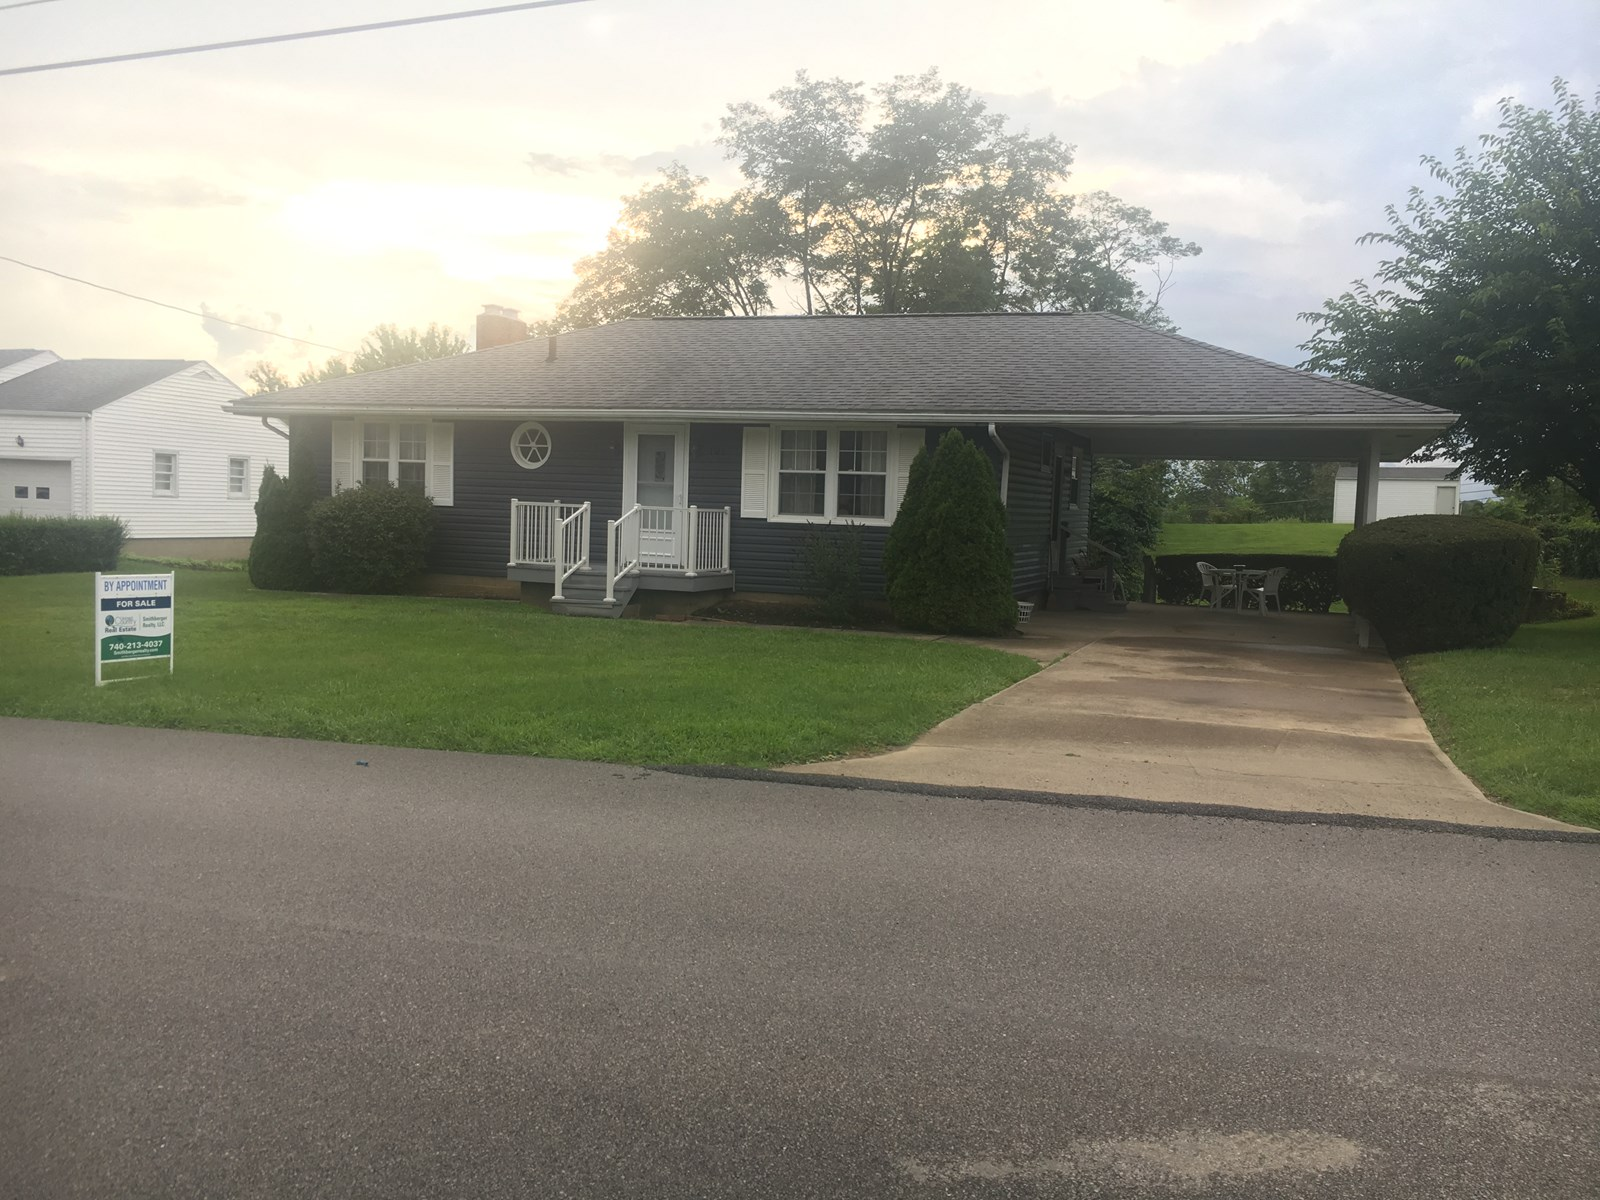 Woodsfield OH Ranch home on full basement